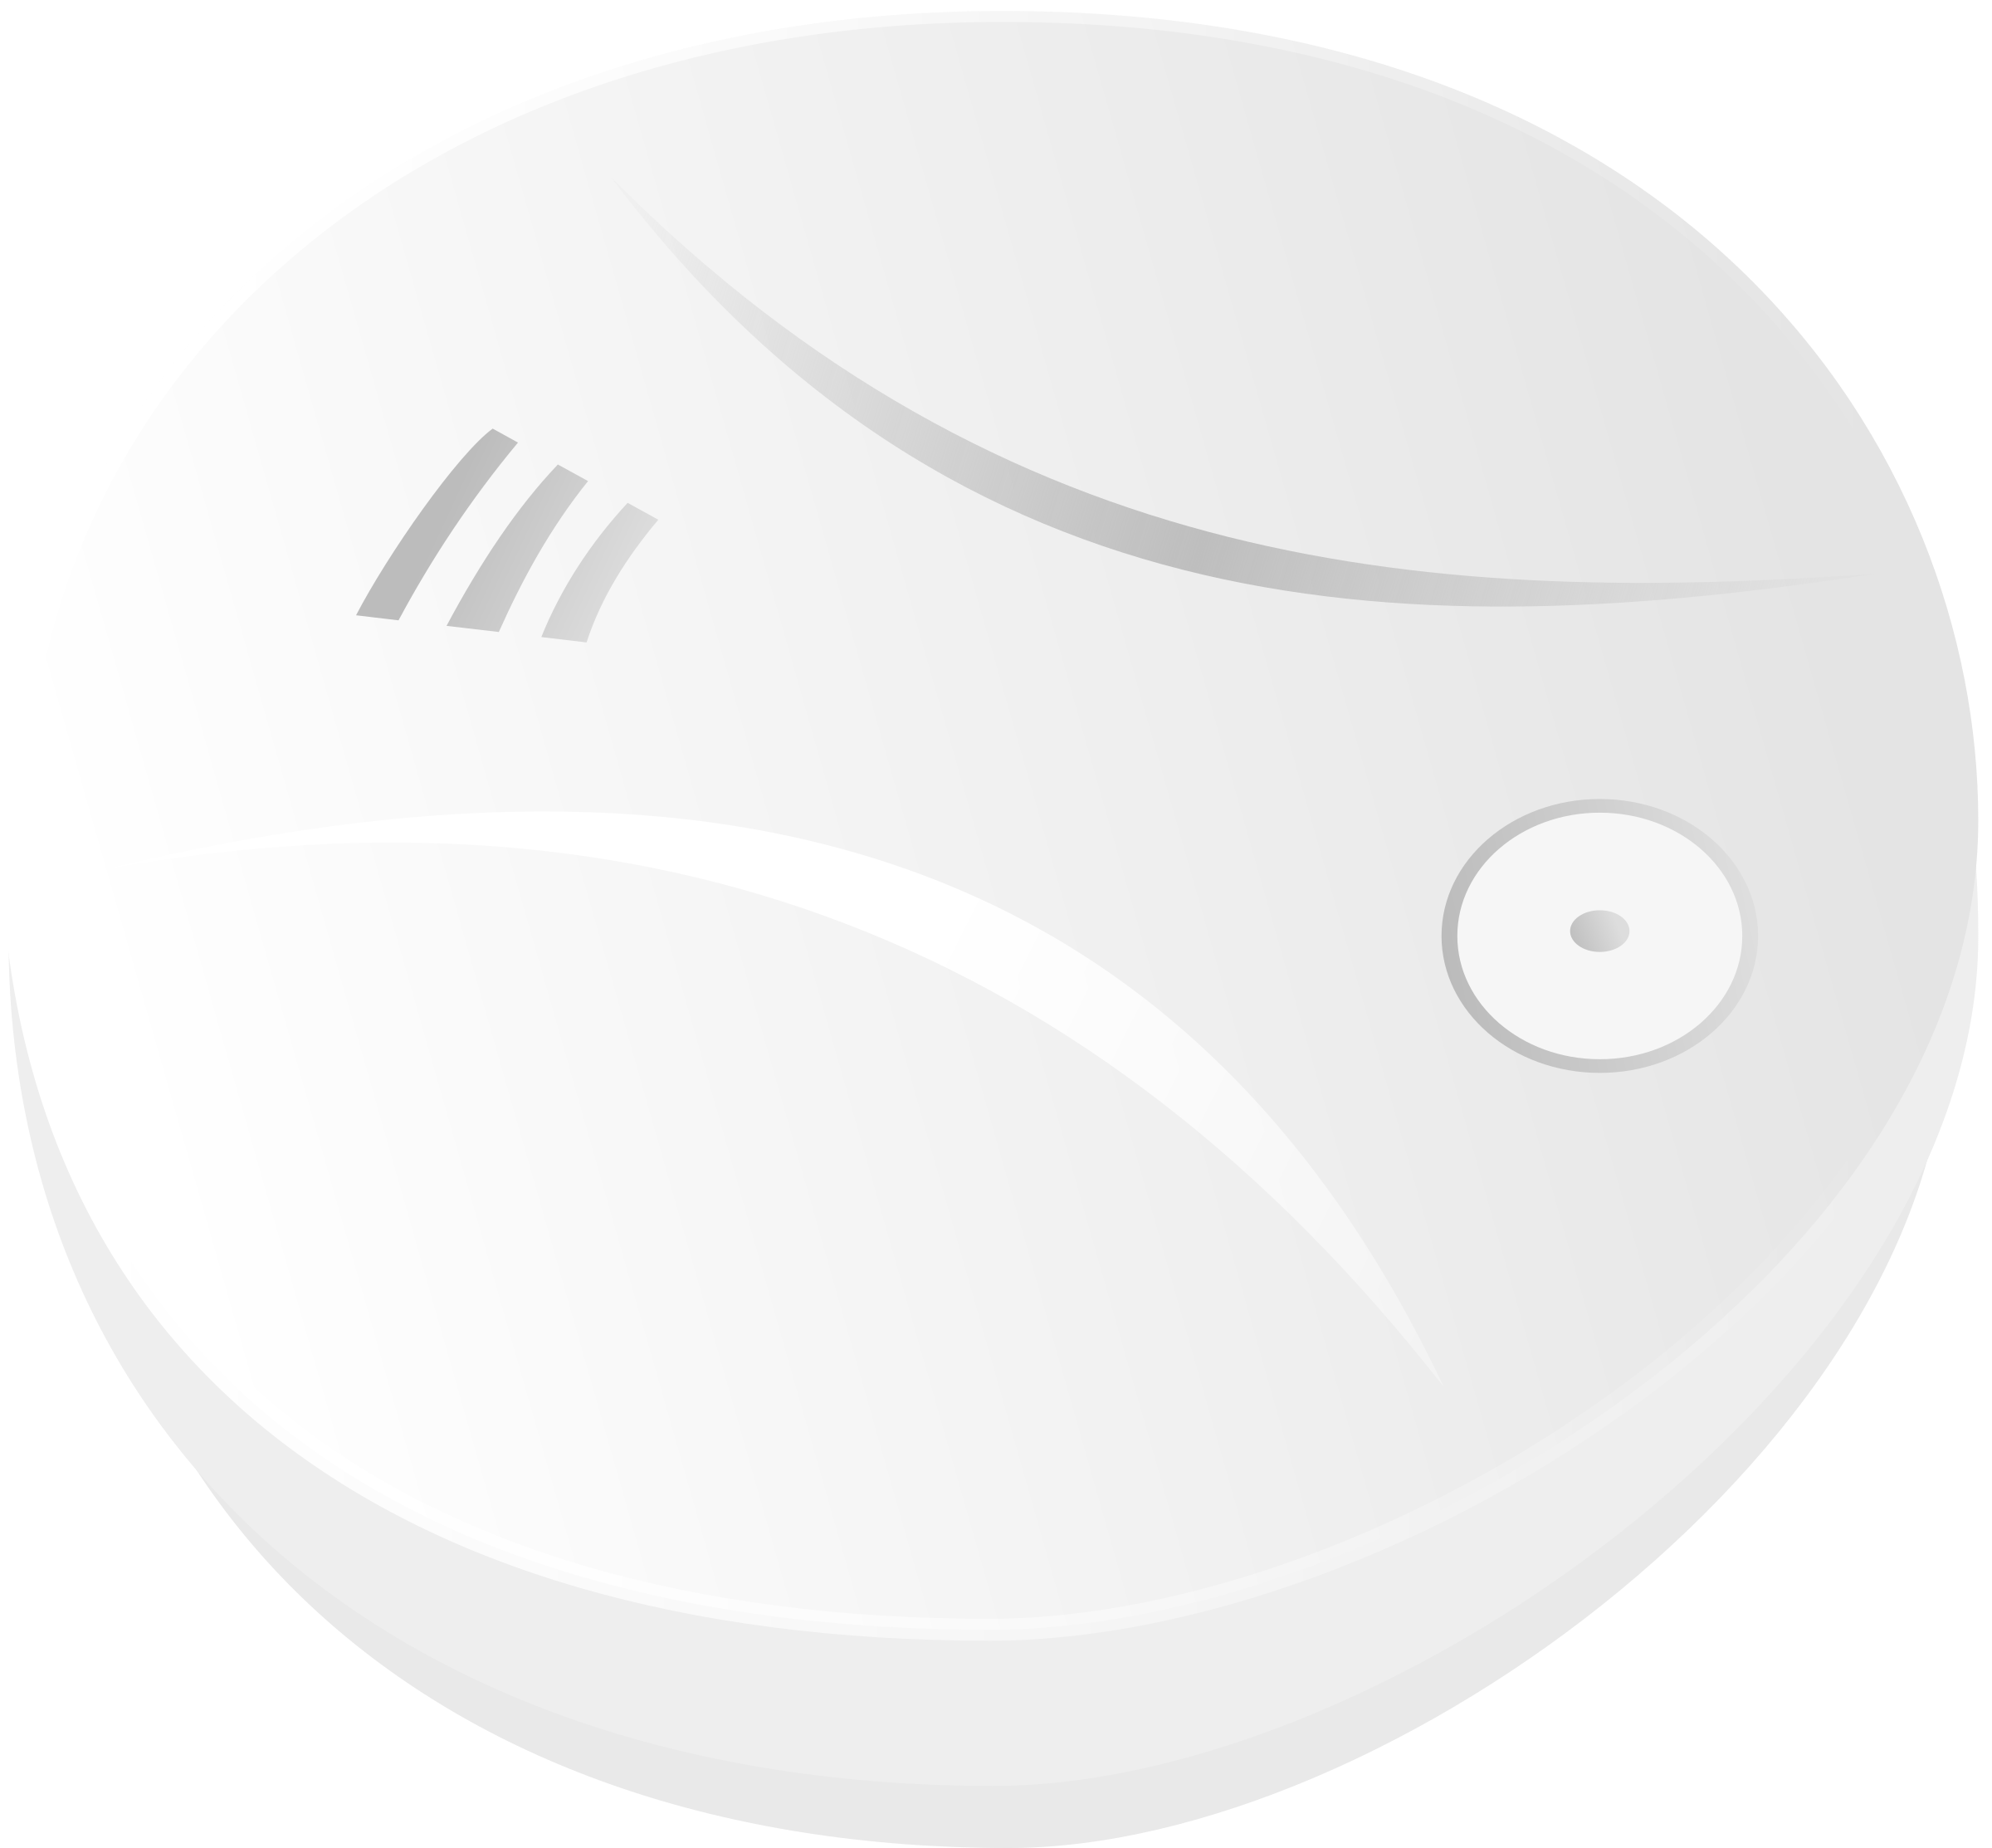 Smoke detector by cyberscooty